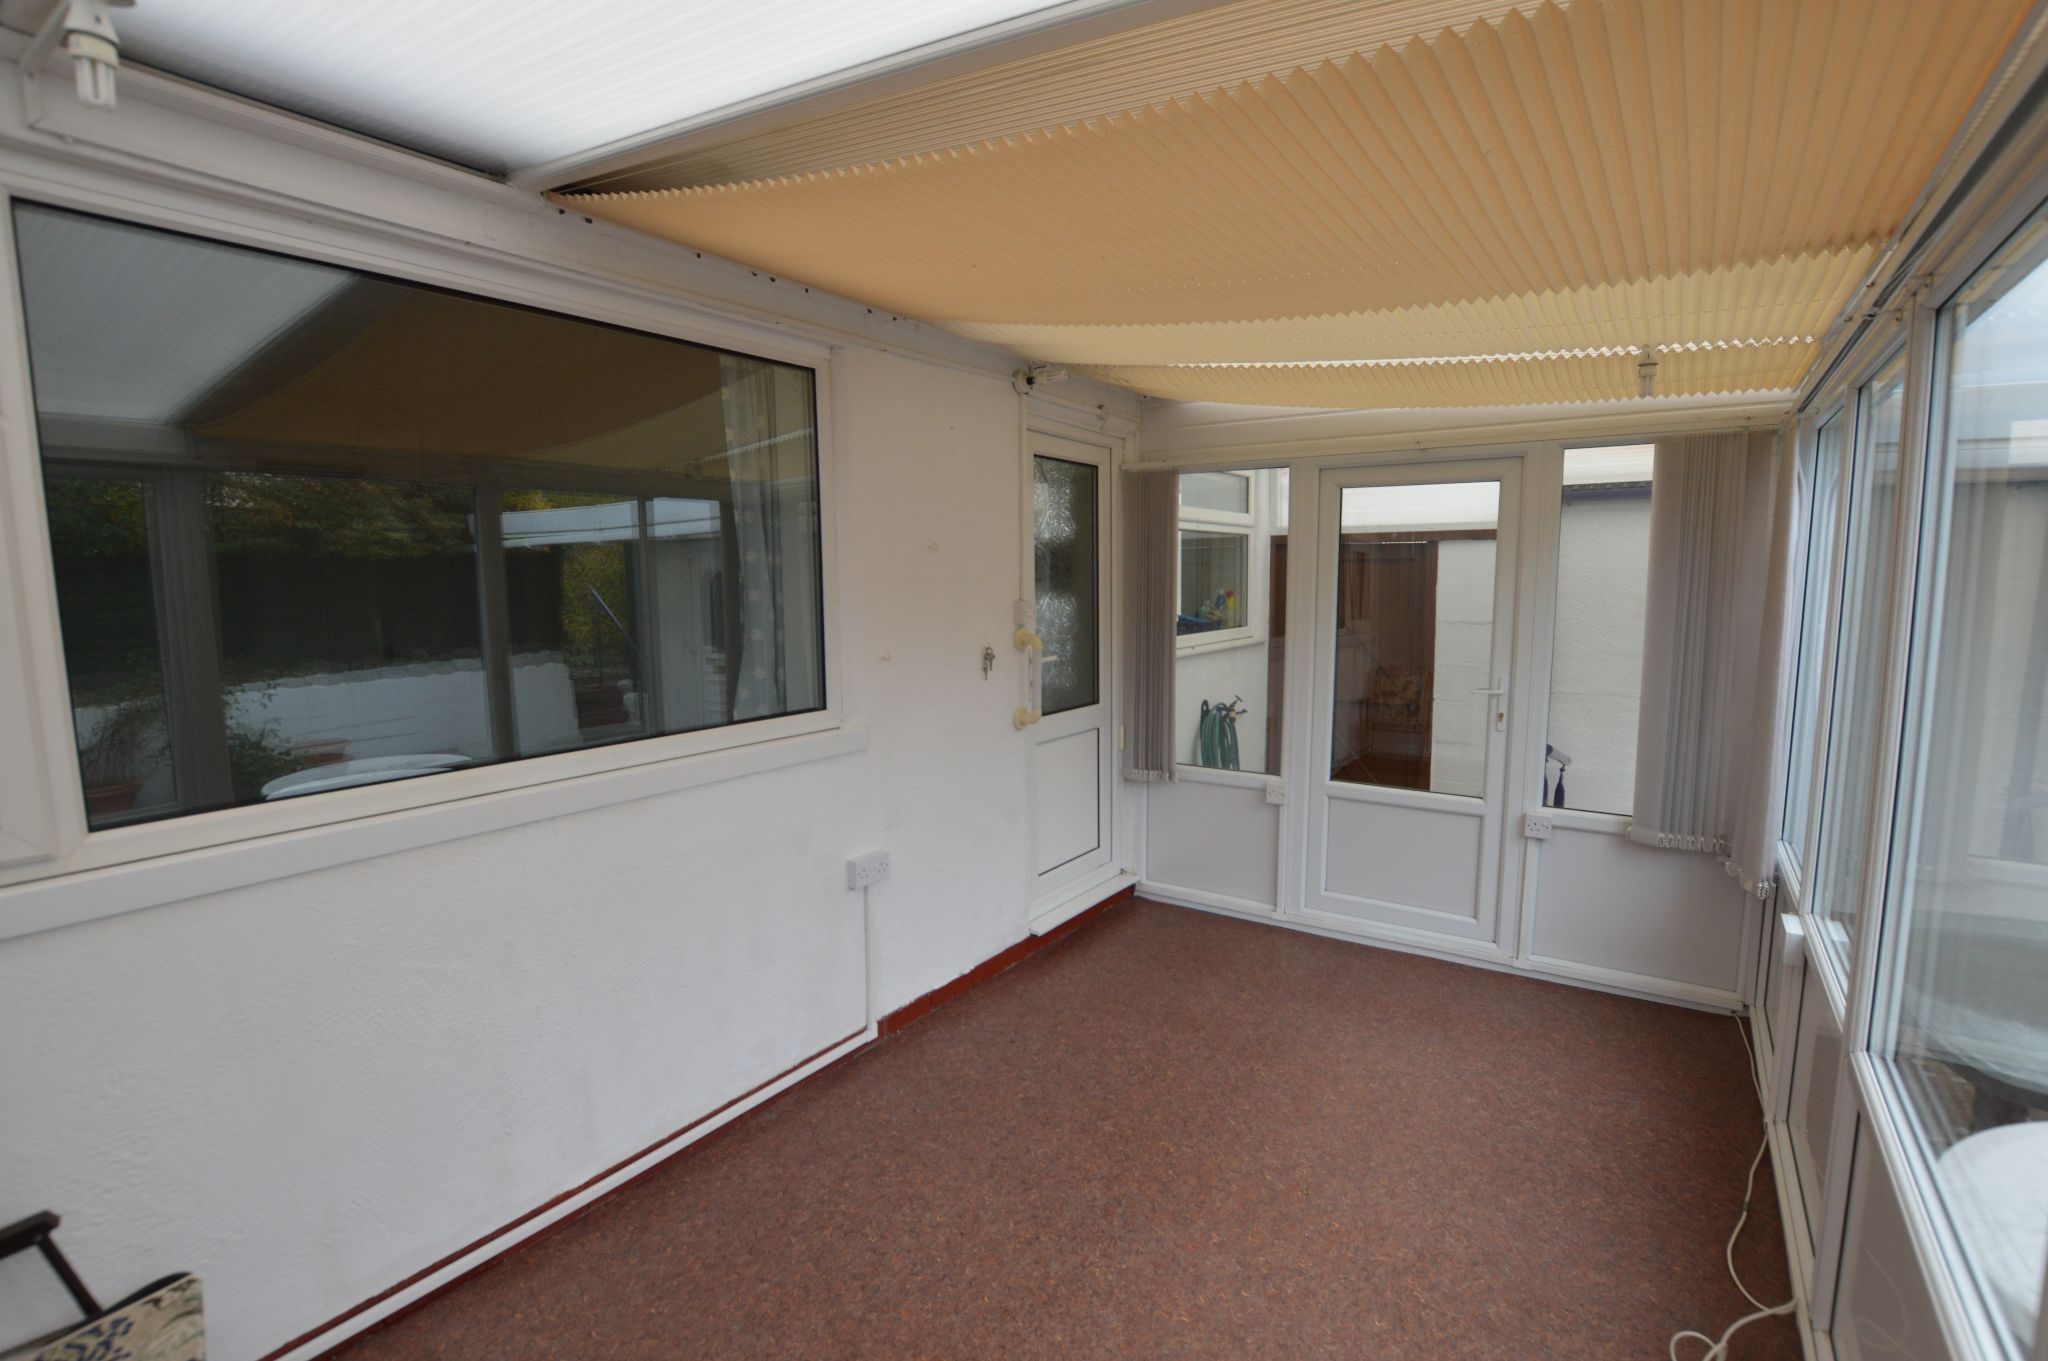 2 bedroom semi-detached bungalow For Sale in Abergele - Conservatory View 2